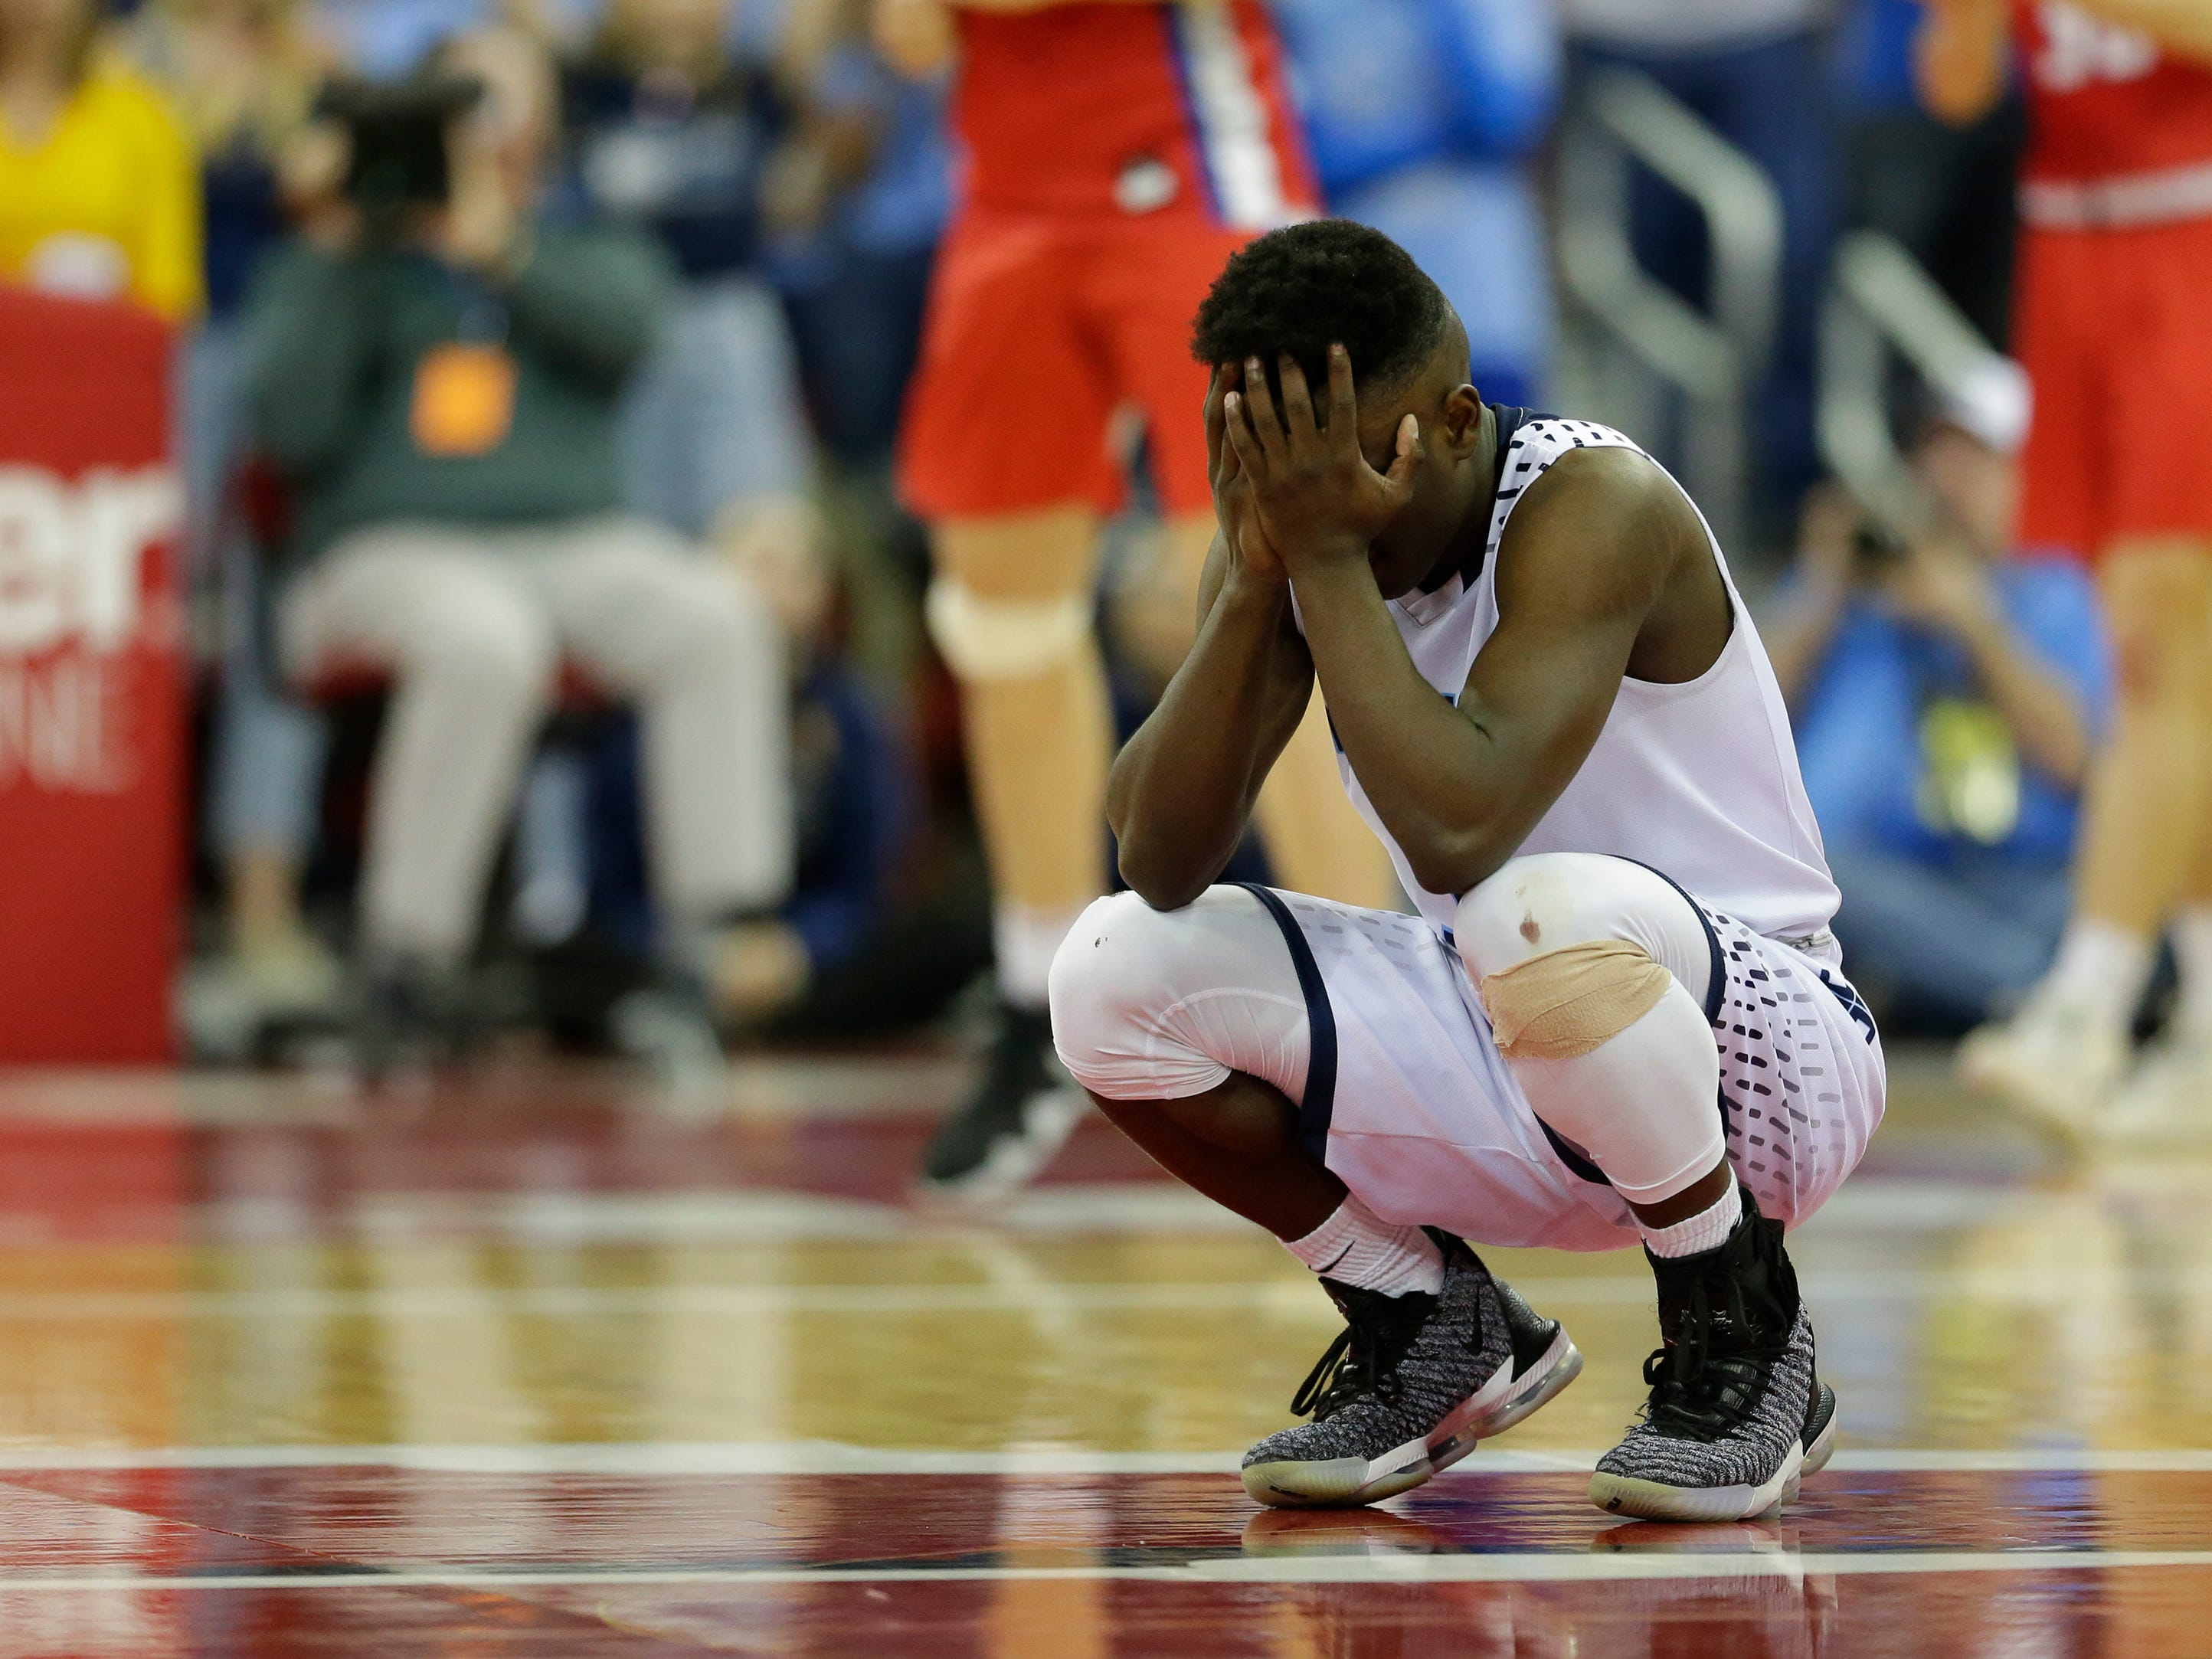 Roncalli High School's Chombi Lambert reacts after missing a shot in the final minute against New Glarus High School during their WIAA Division 4 boys basketball state semifinal at the Kohl Center Thursday, March 14, 2019, in Madison.